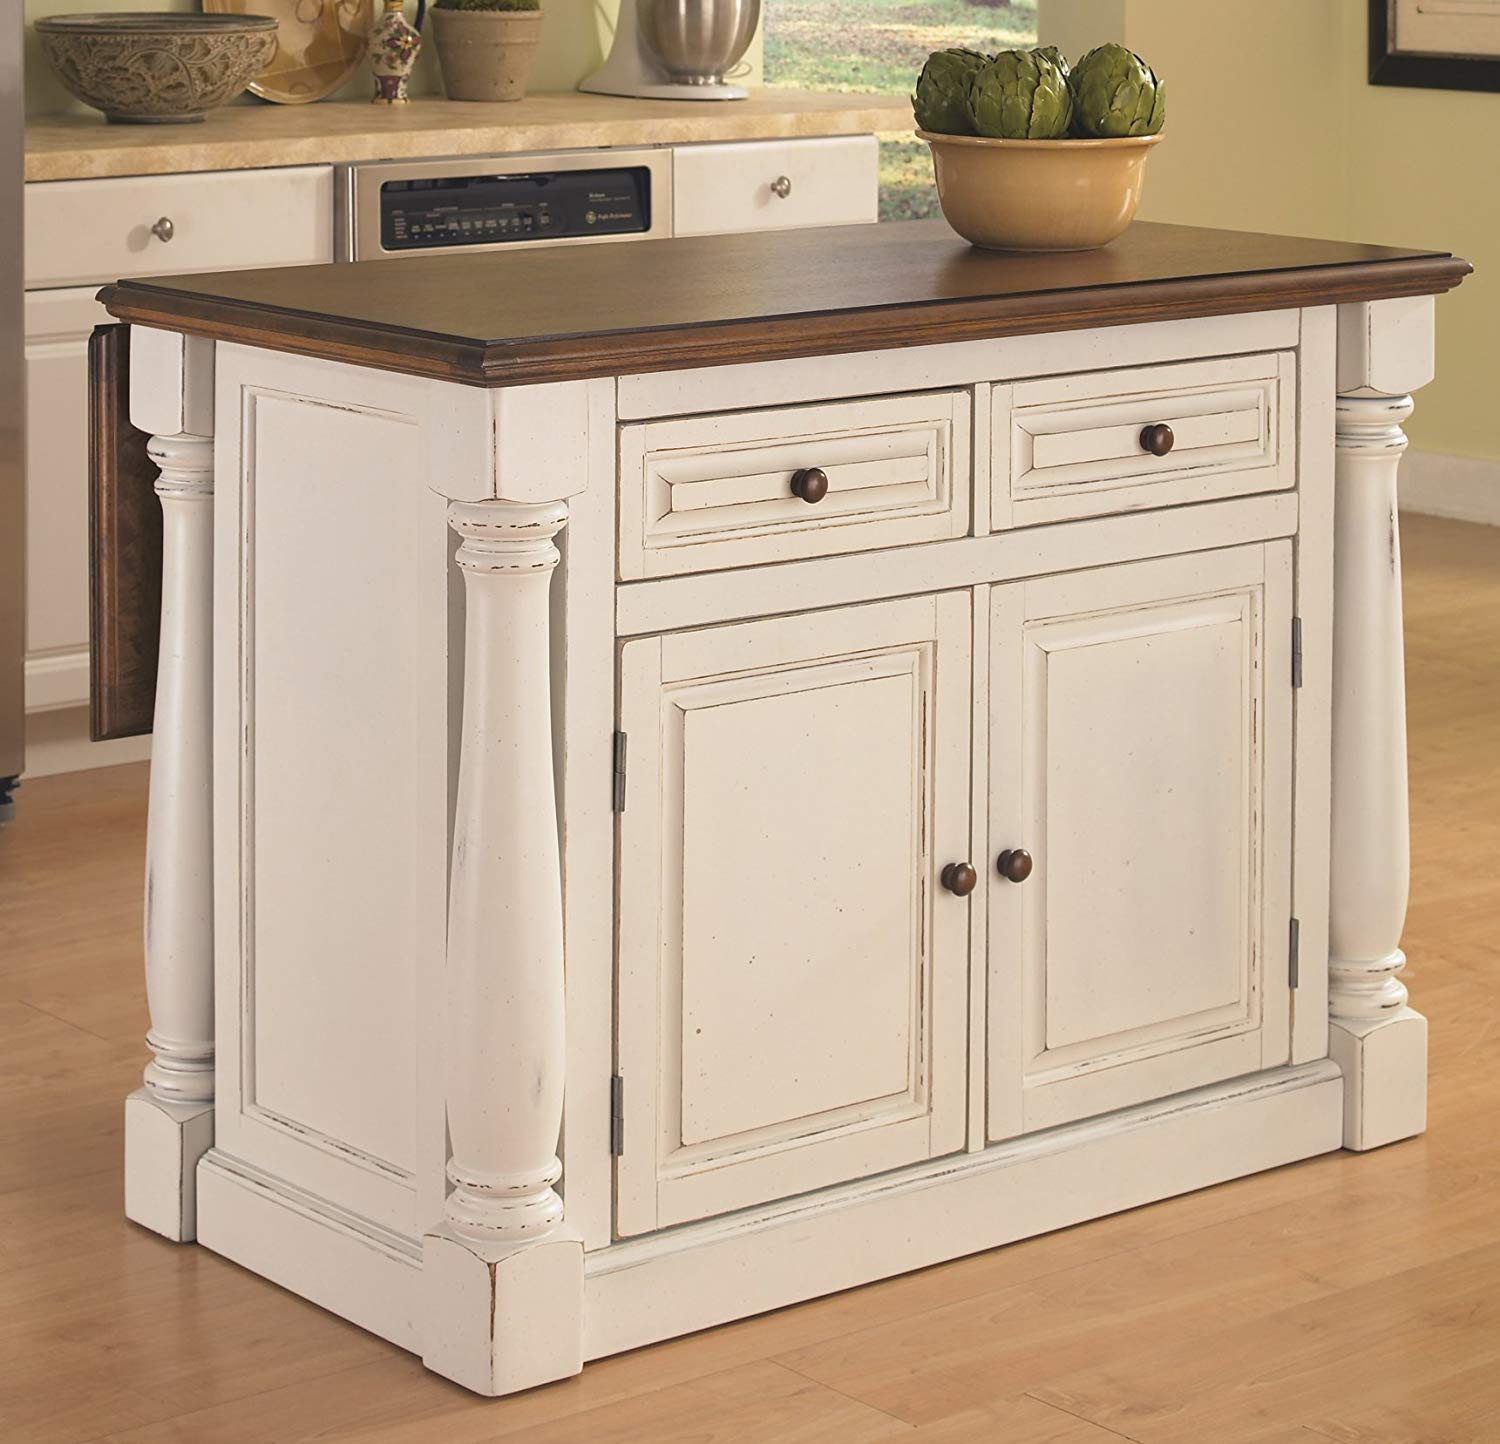 Monarch White Kitchen Island by Home Styles.